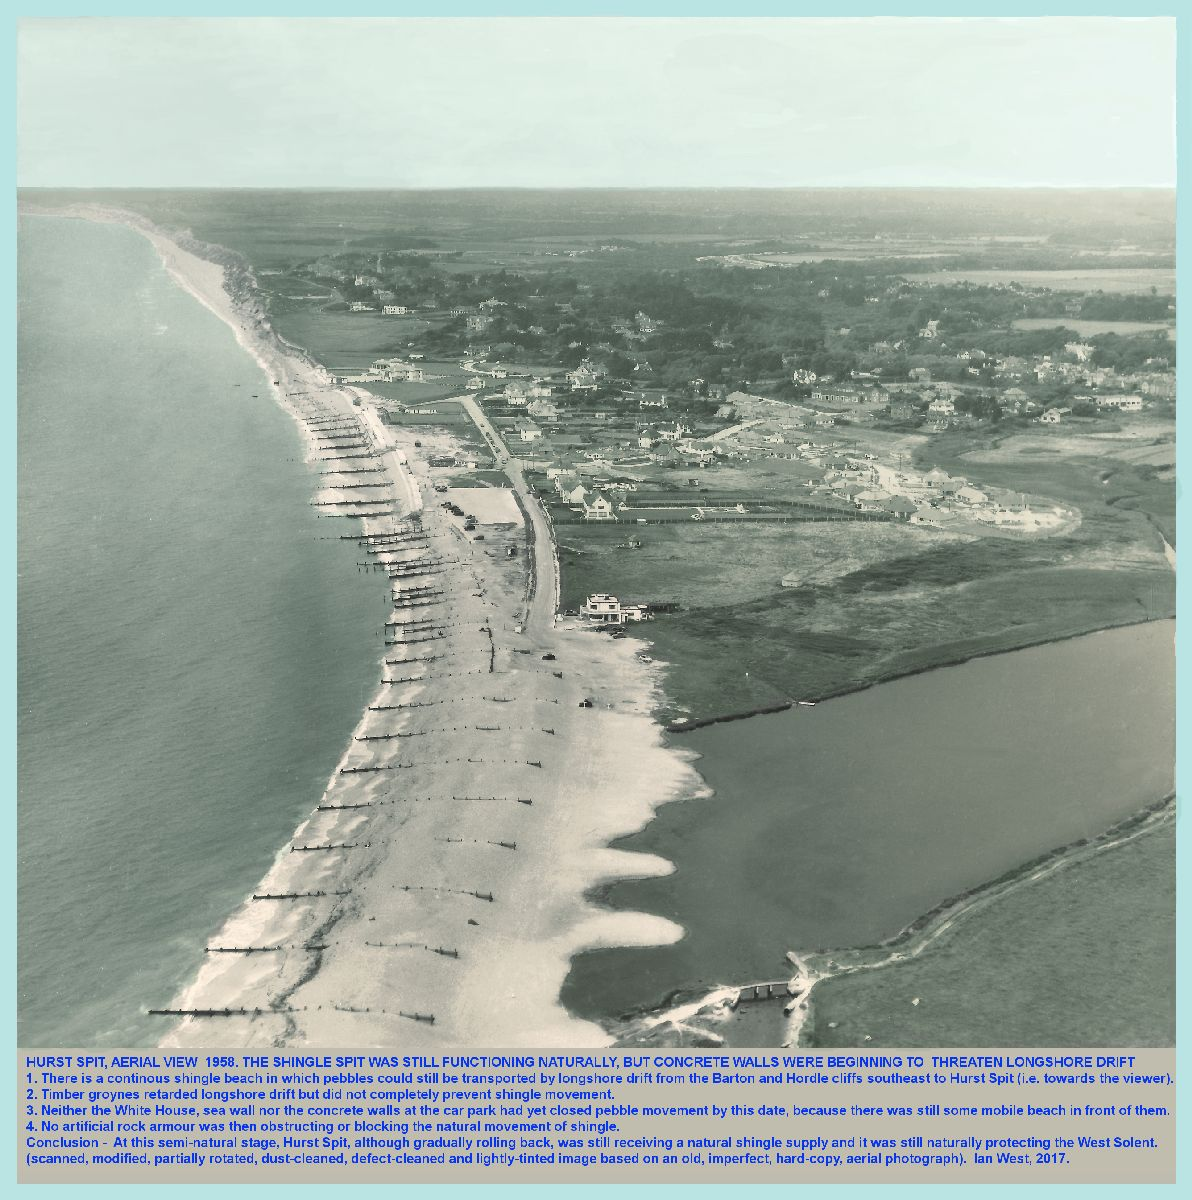 The Milford end of Hurst Spit, Hampshire, seen in aerial view in 1958, shown here in as a version that has been lightly tinted by Ian West, 11 November, 2017